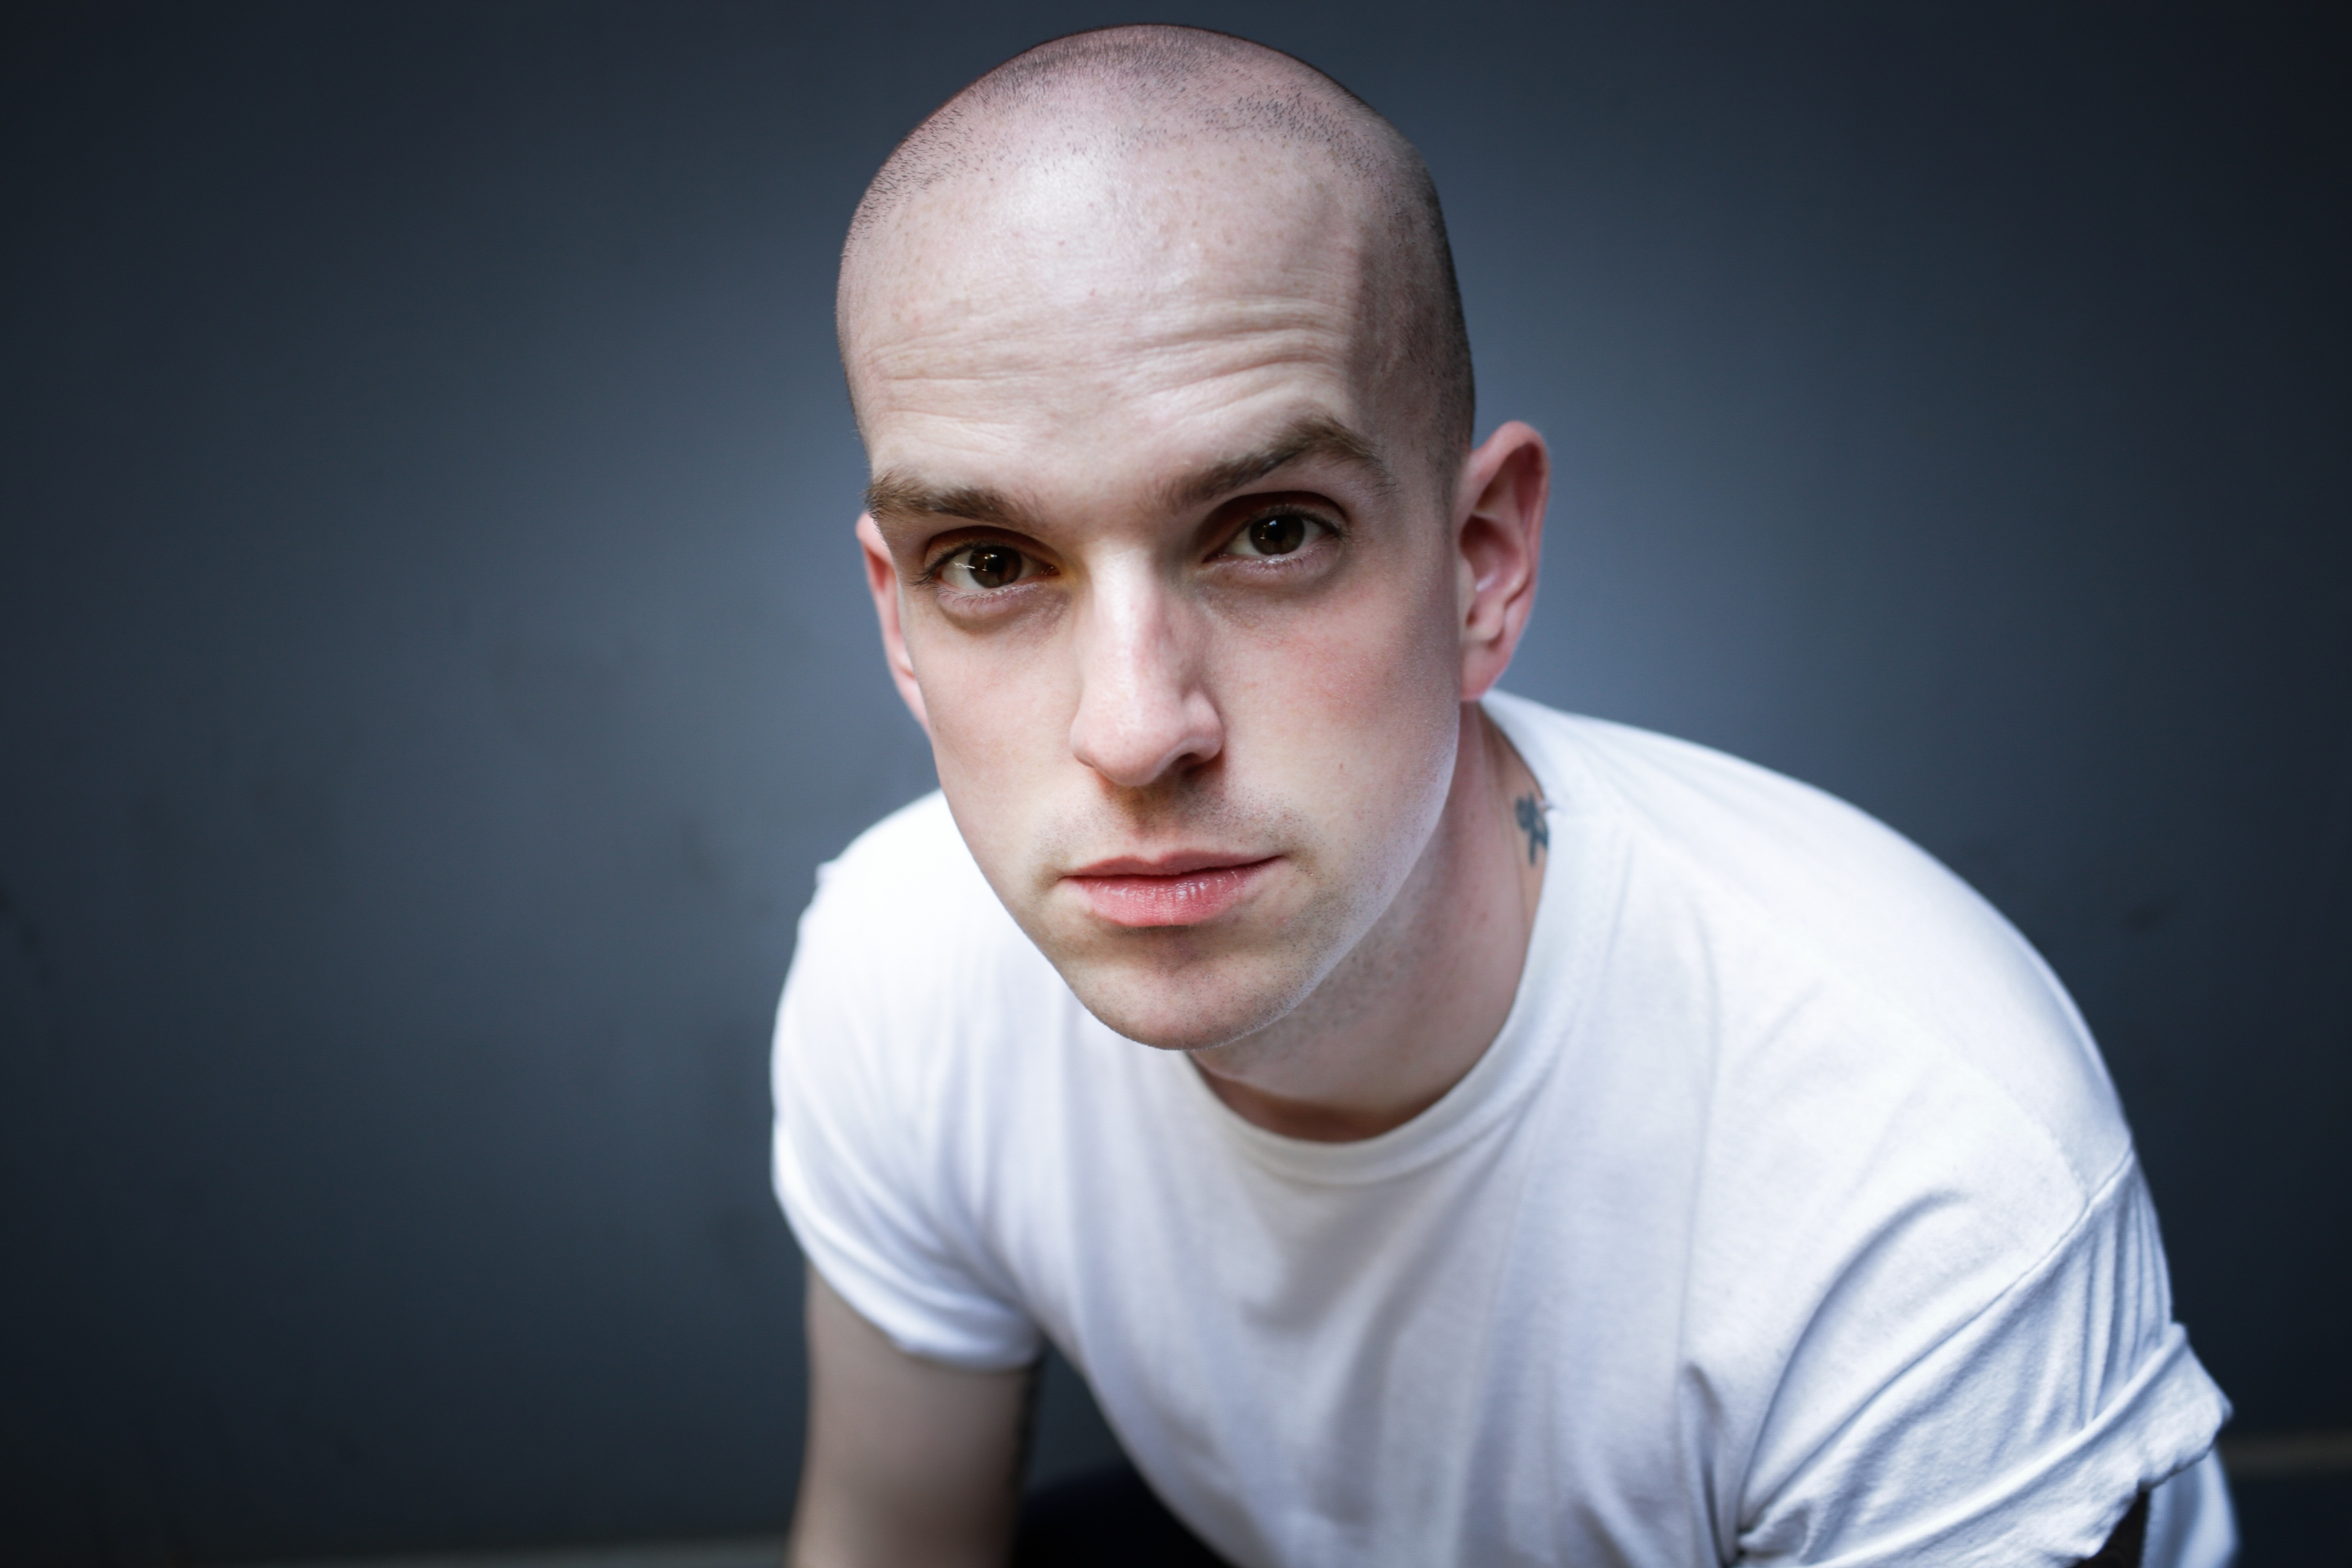 Andrew McMillan, author of Physical